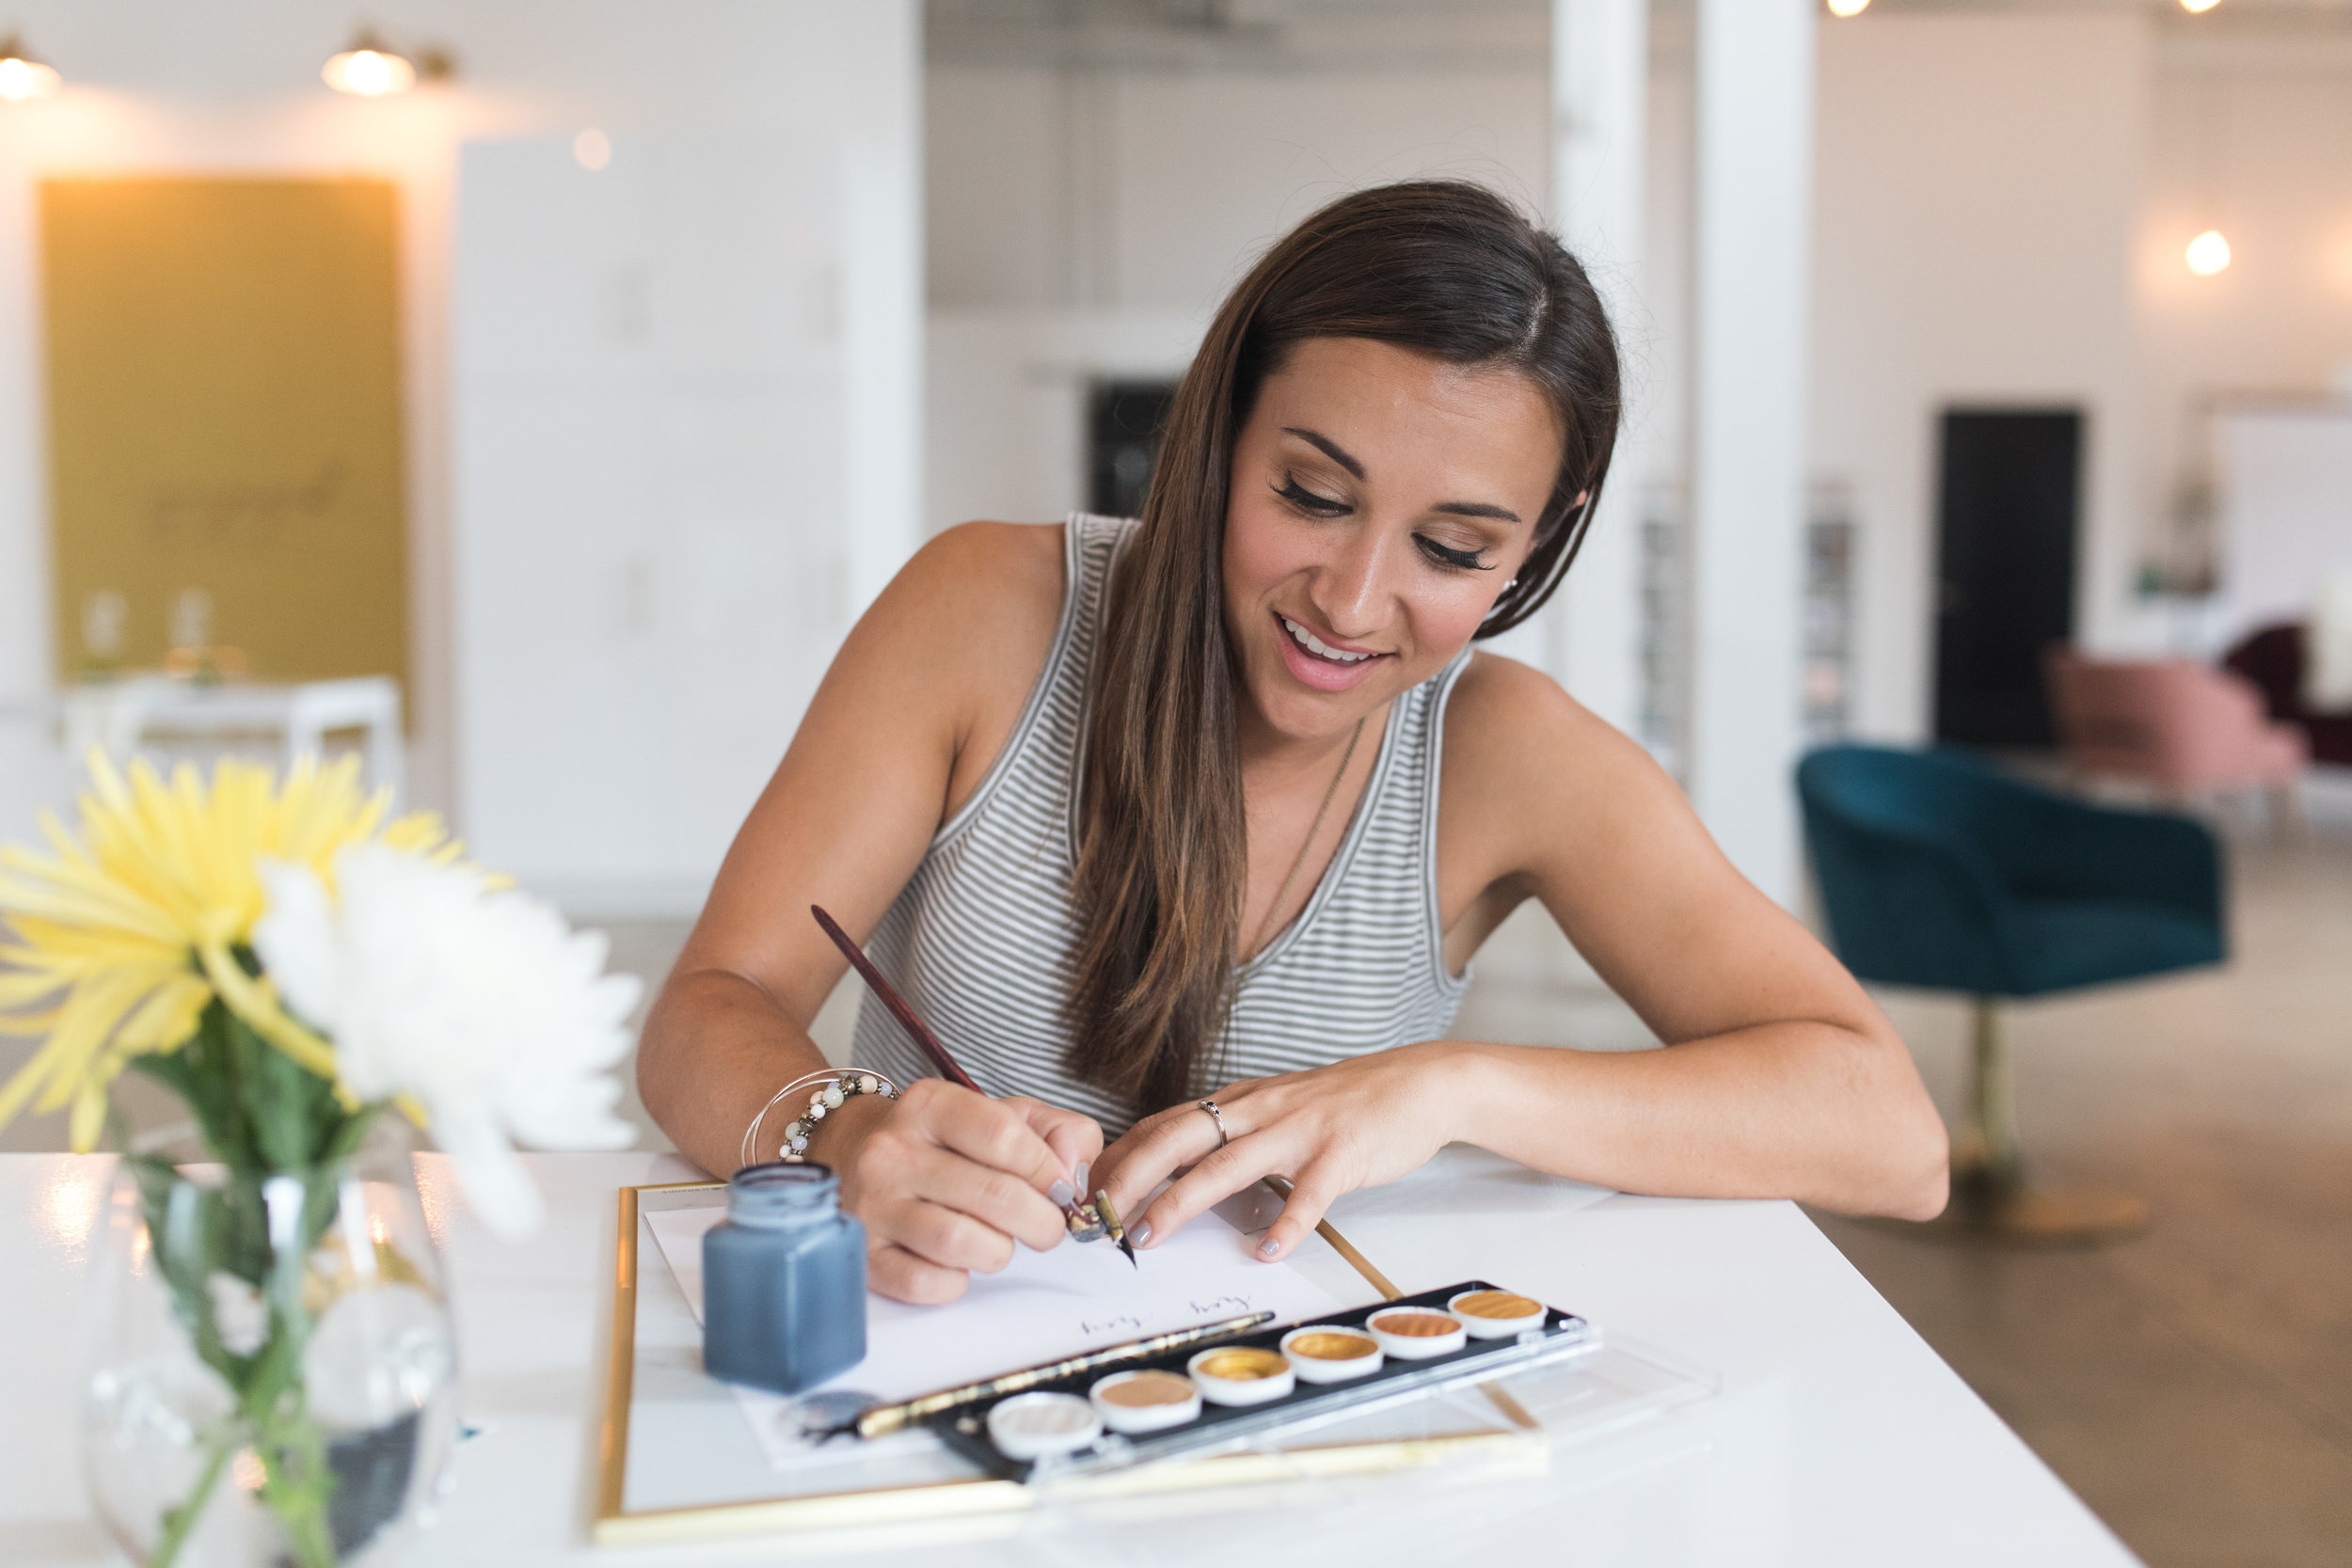 ULTIMATE GUIDE TO WEDDING CALLIGRAPHY - Joy Unscripted was featured on Engaged Asheville's Blog